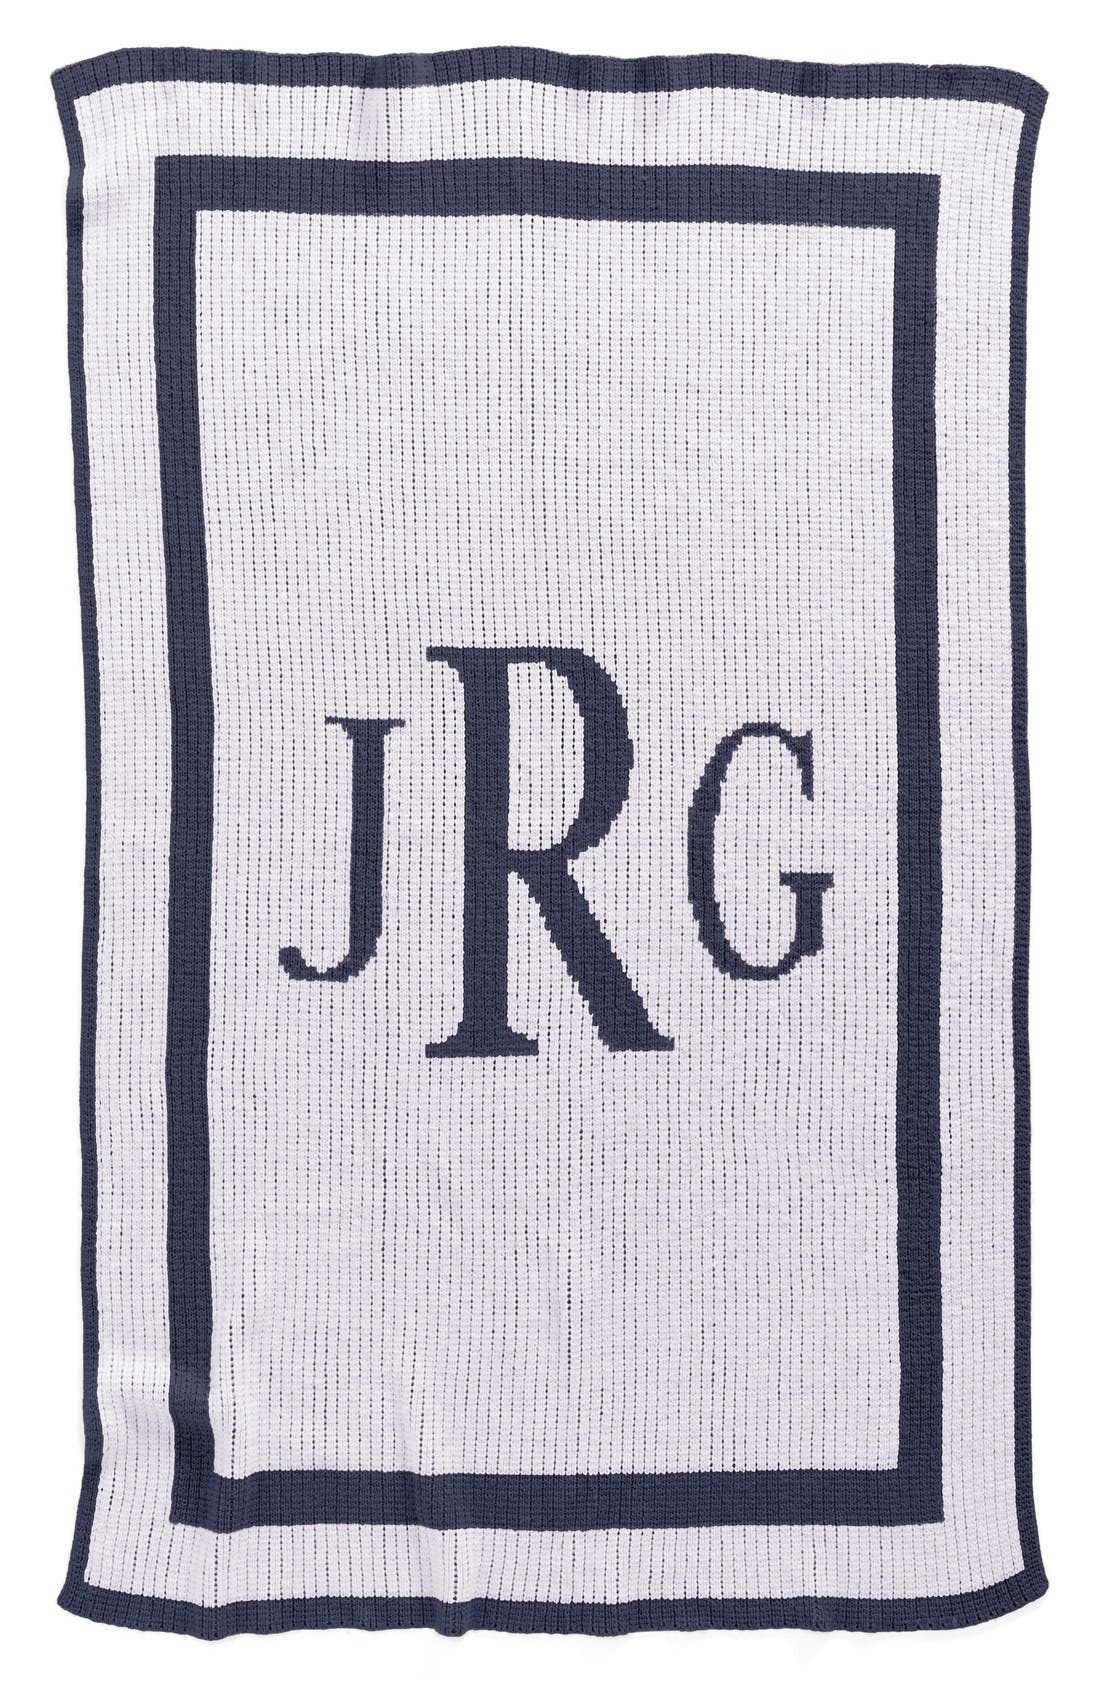 'Classic Monogram' Personalized Stroller Blanket,                         Main,                         color, White/ Navy